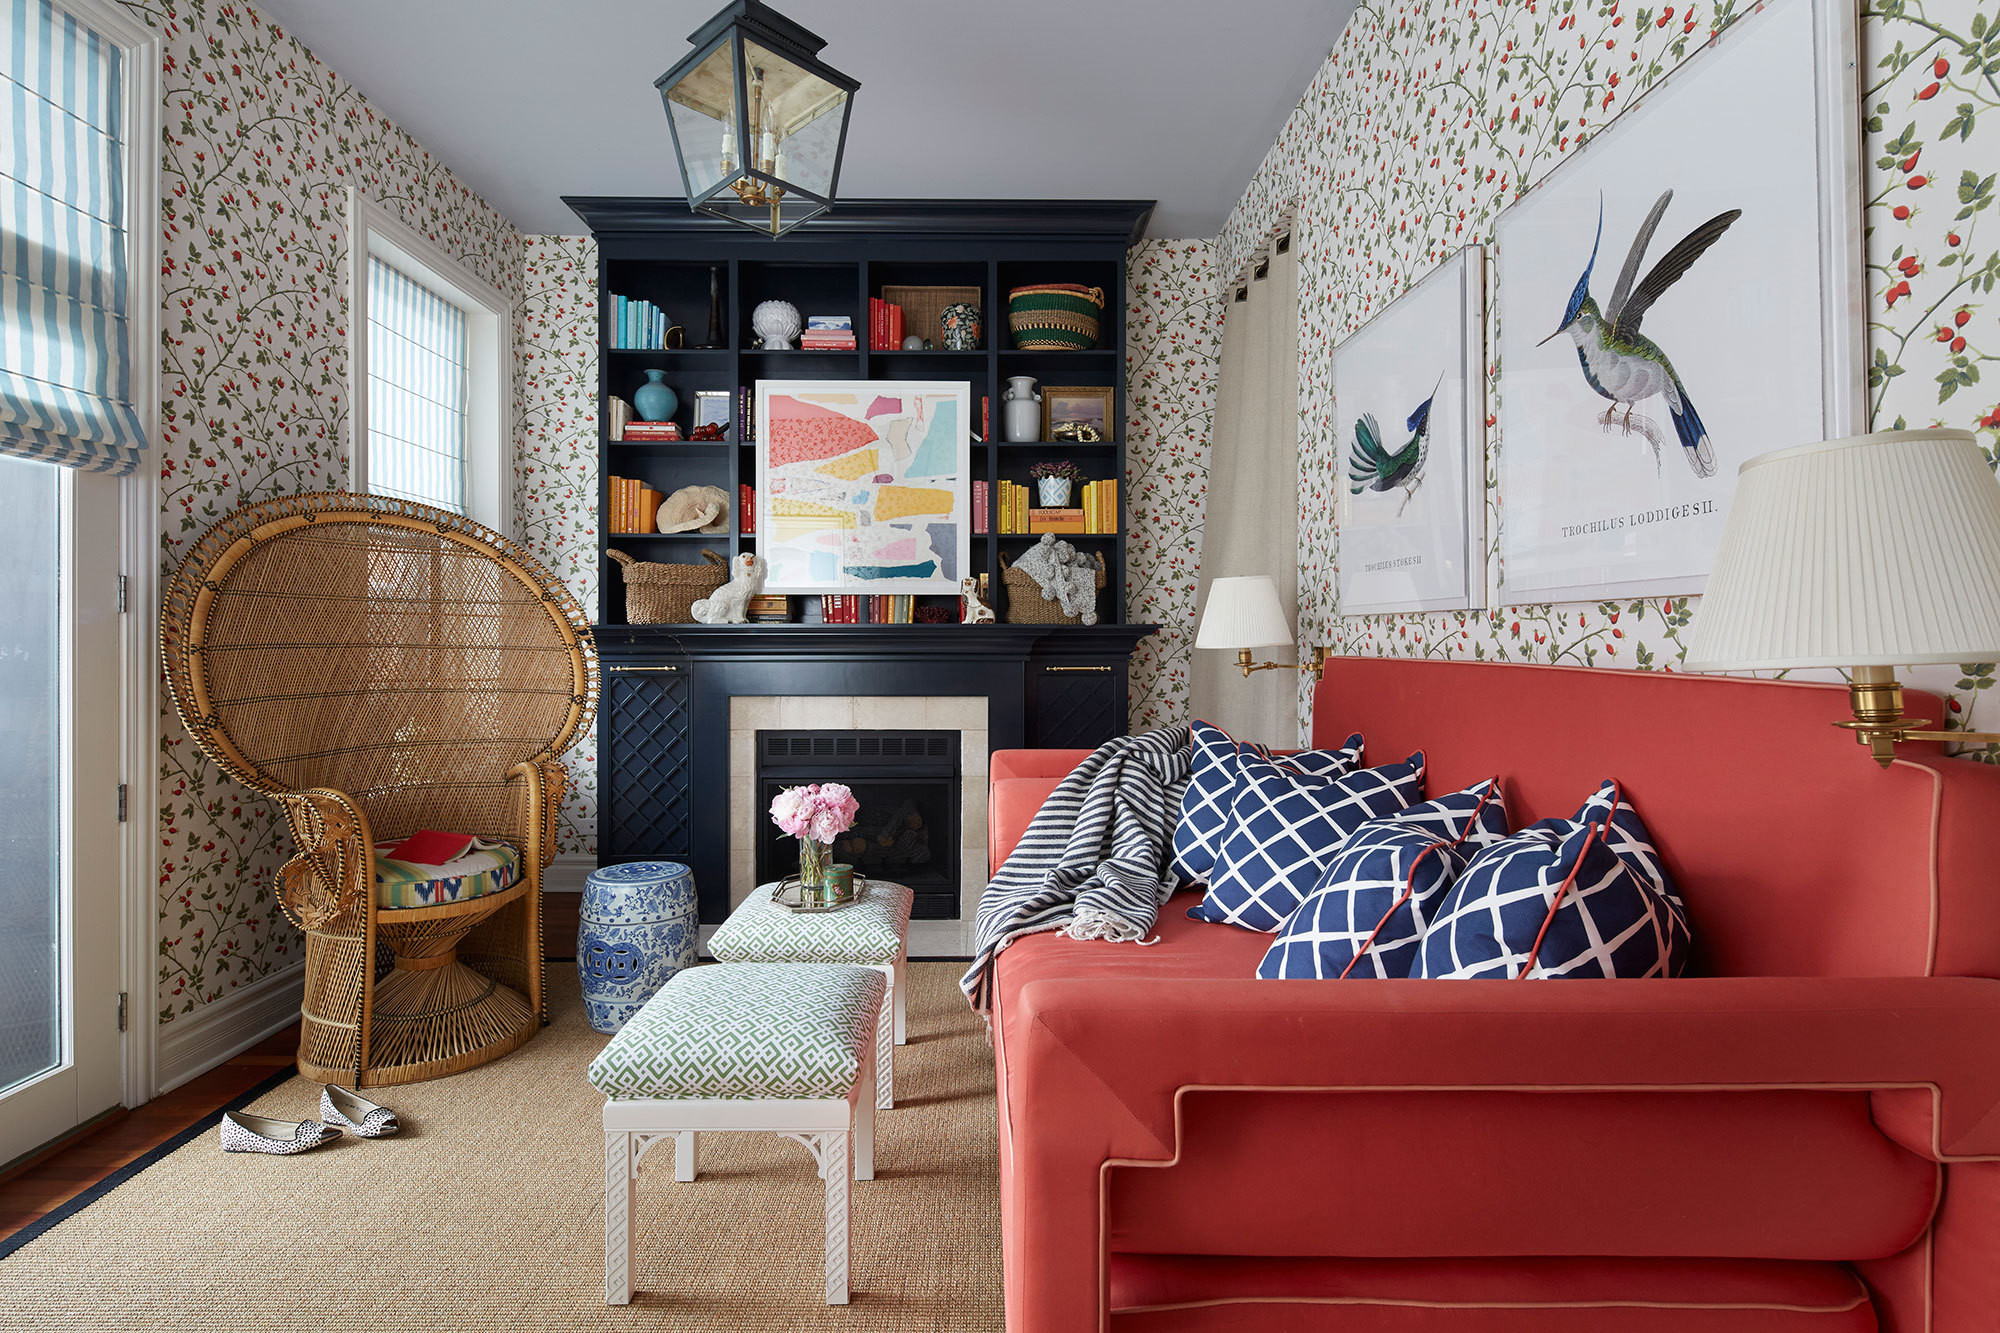 Pattern, Texture, And Color Combine In An Eclectic Chicago Apartment  Designed By Summer Thornton